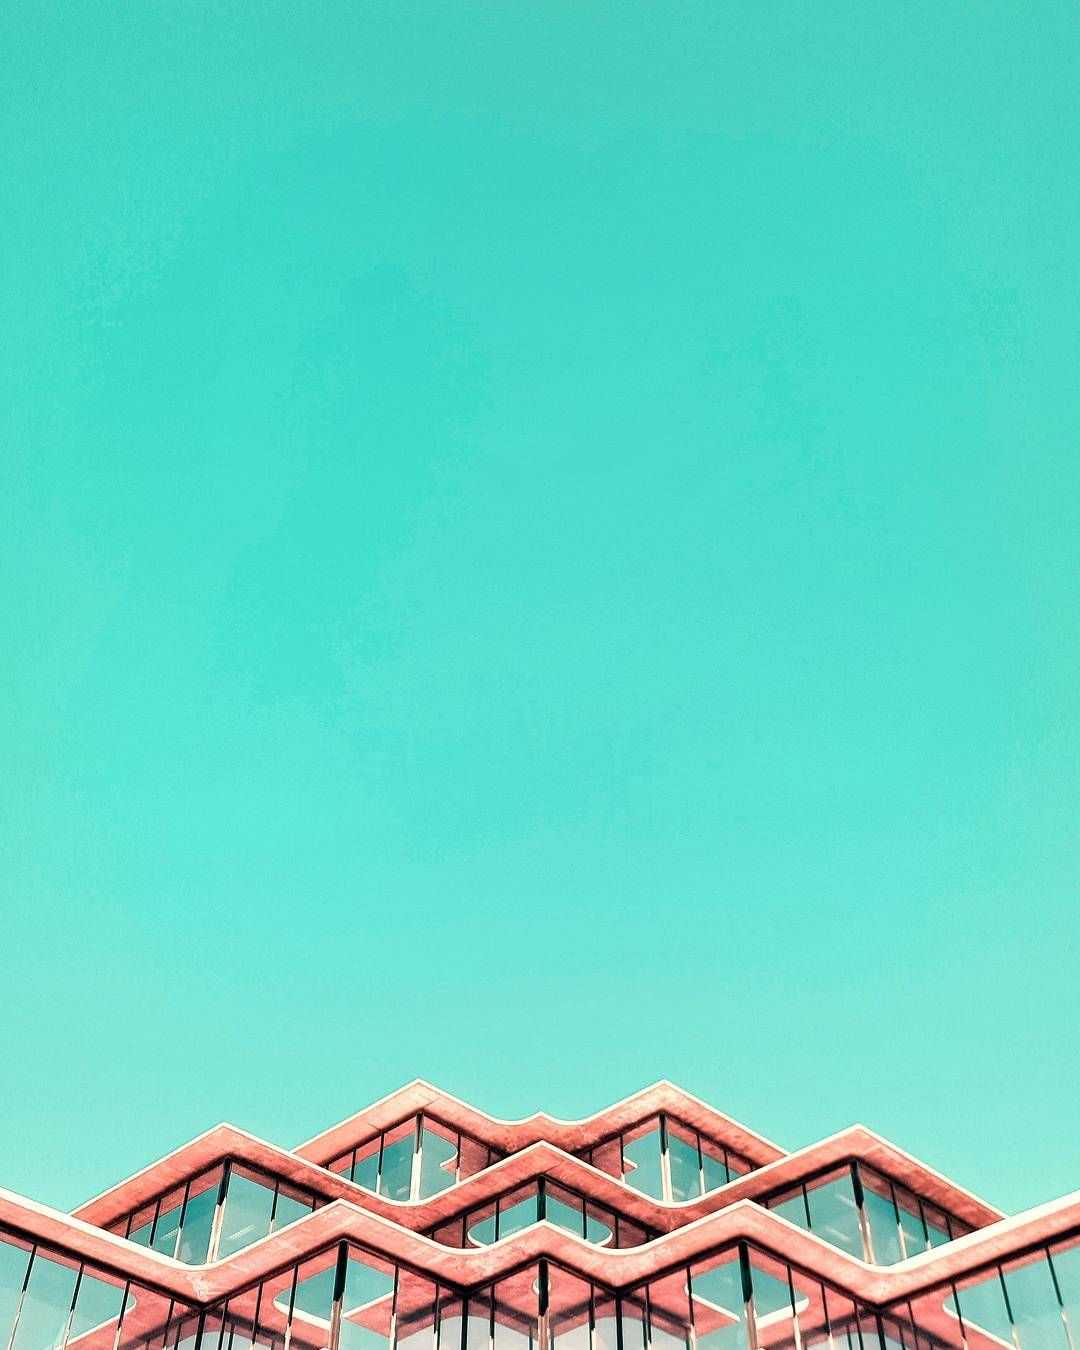 Colorful and Aesthetic Minimalist Photography by Aryton Page ...